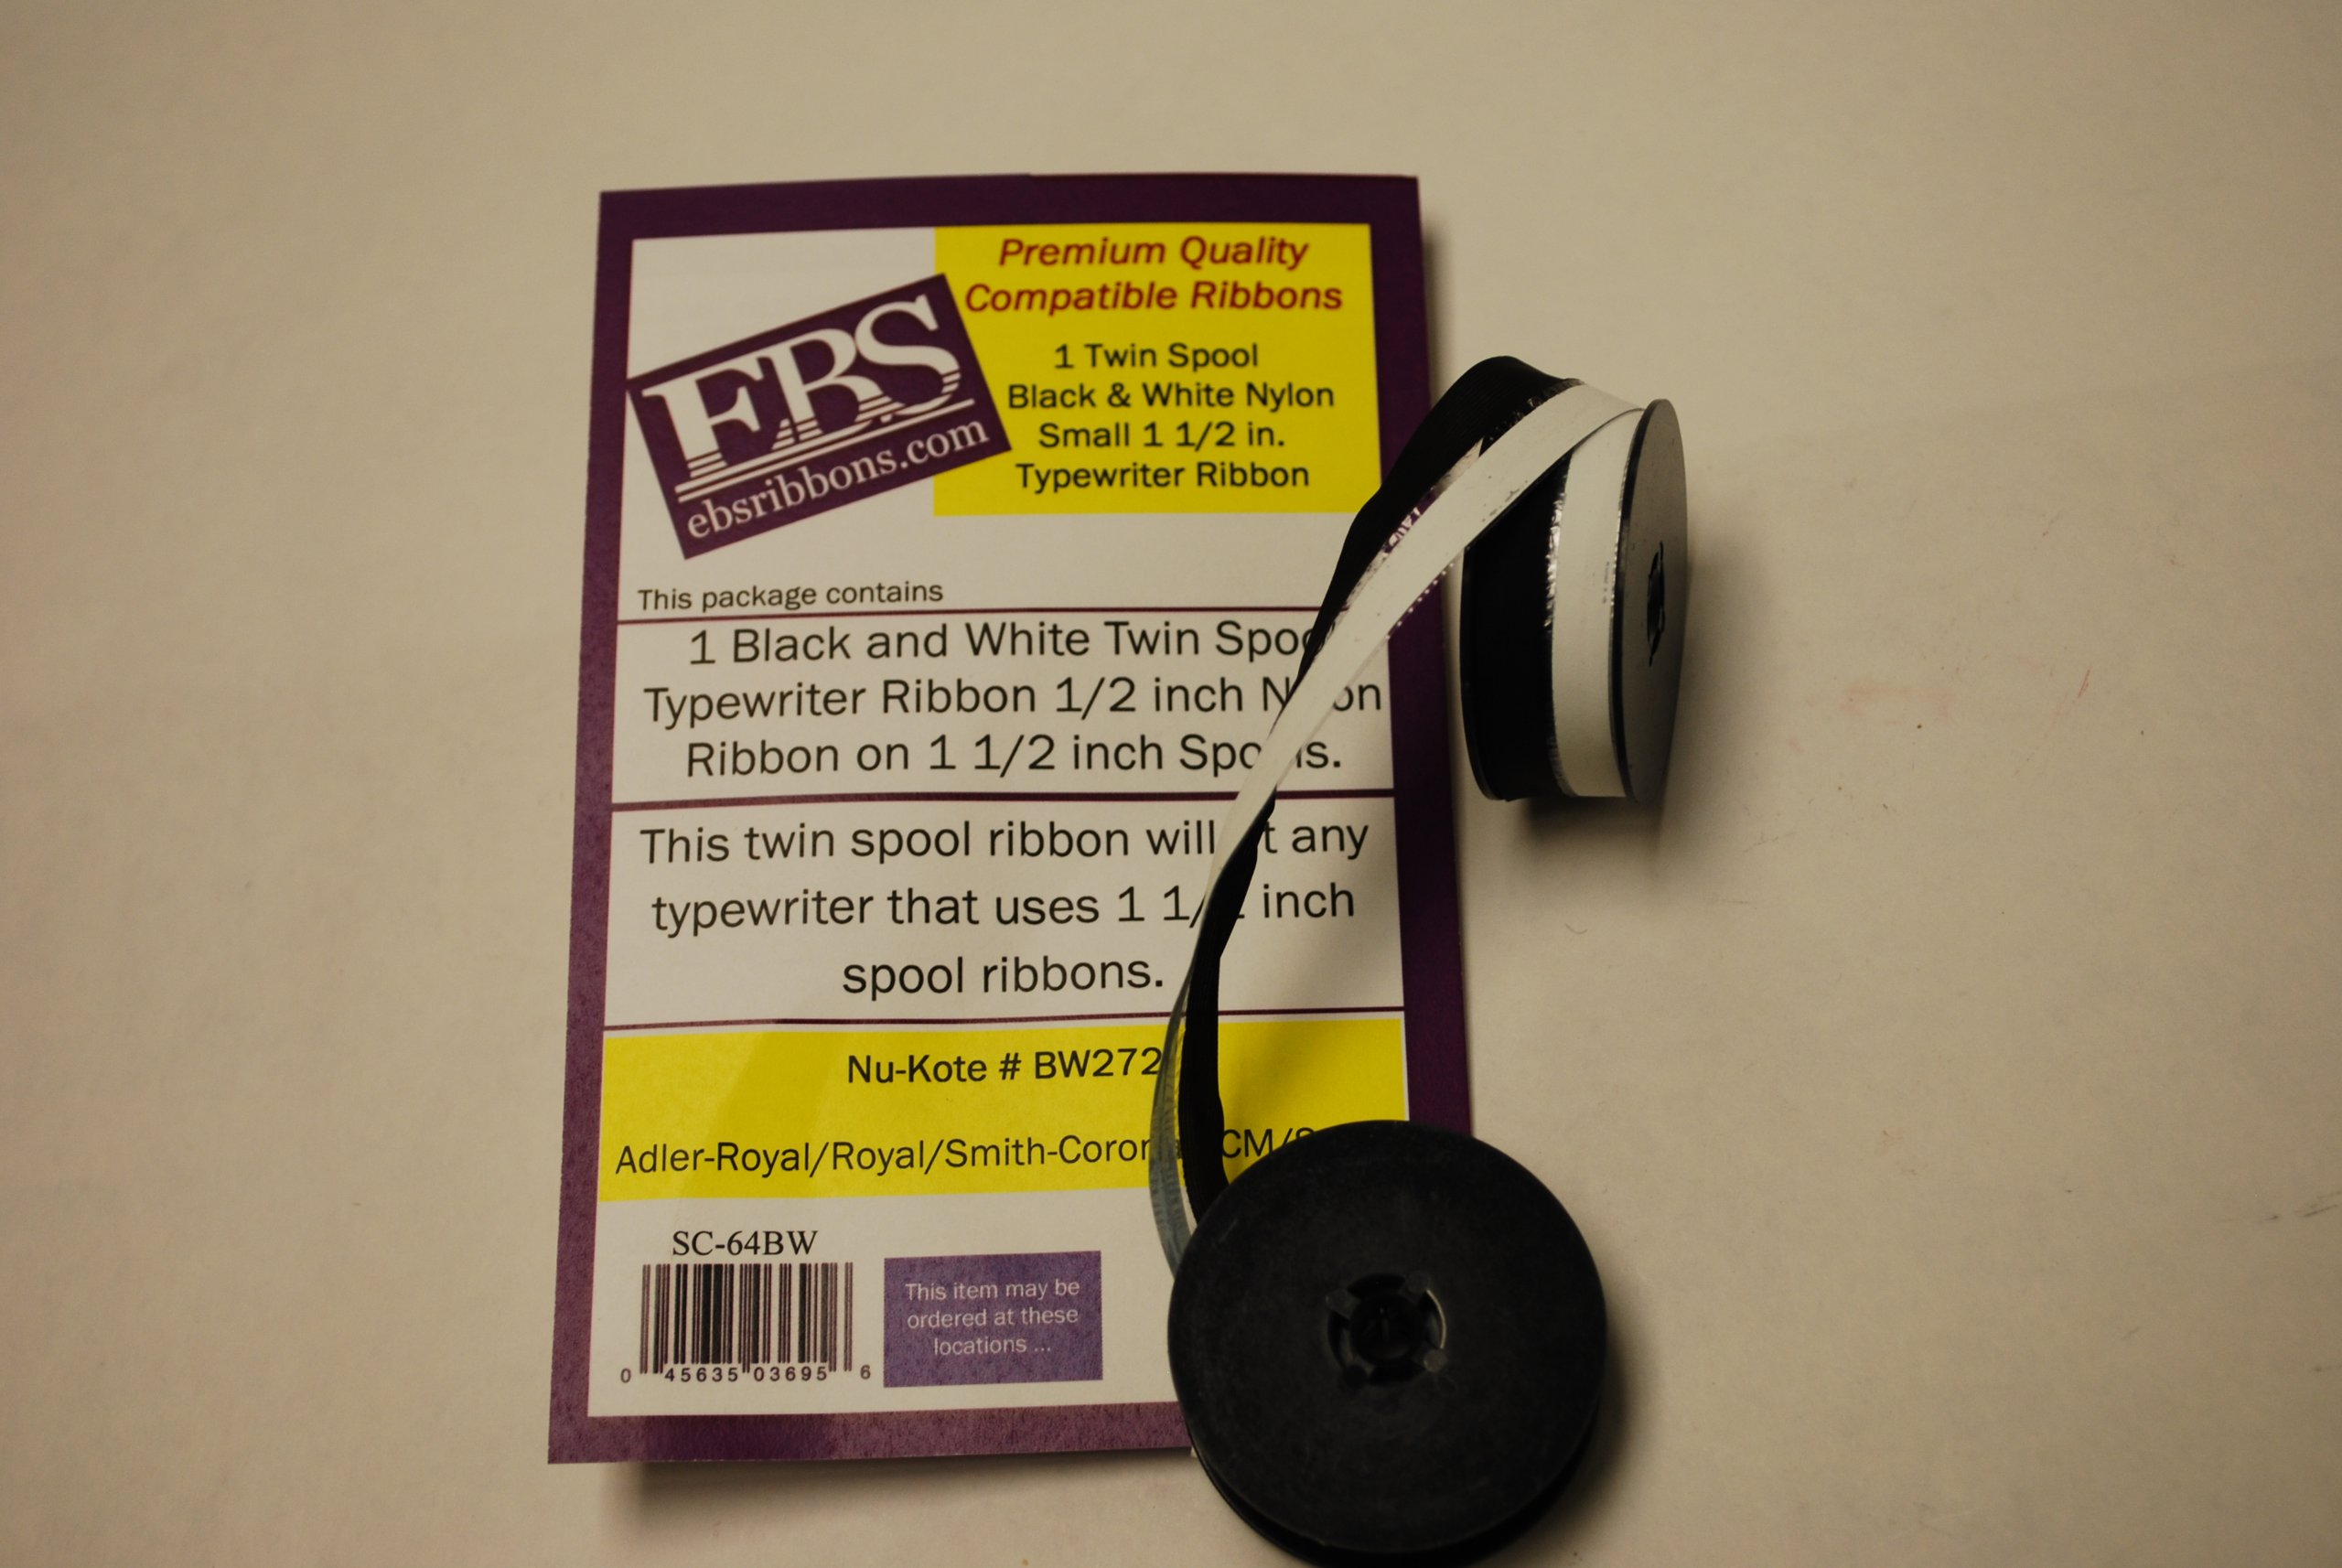 EBS Premium Quality Nylon Black & White 1.5in.Twin Spool Typewriter Ribbon Compatable with Nu-Kote #T42, #T46, and GRC #B29. Fits Adler, Royal, Smith-Corona, SCM & Sears. This twin spool ribbon will fit any typewriter that uses 1 1/2 inch spool ribbons.